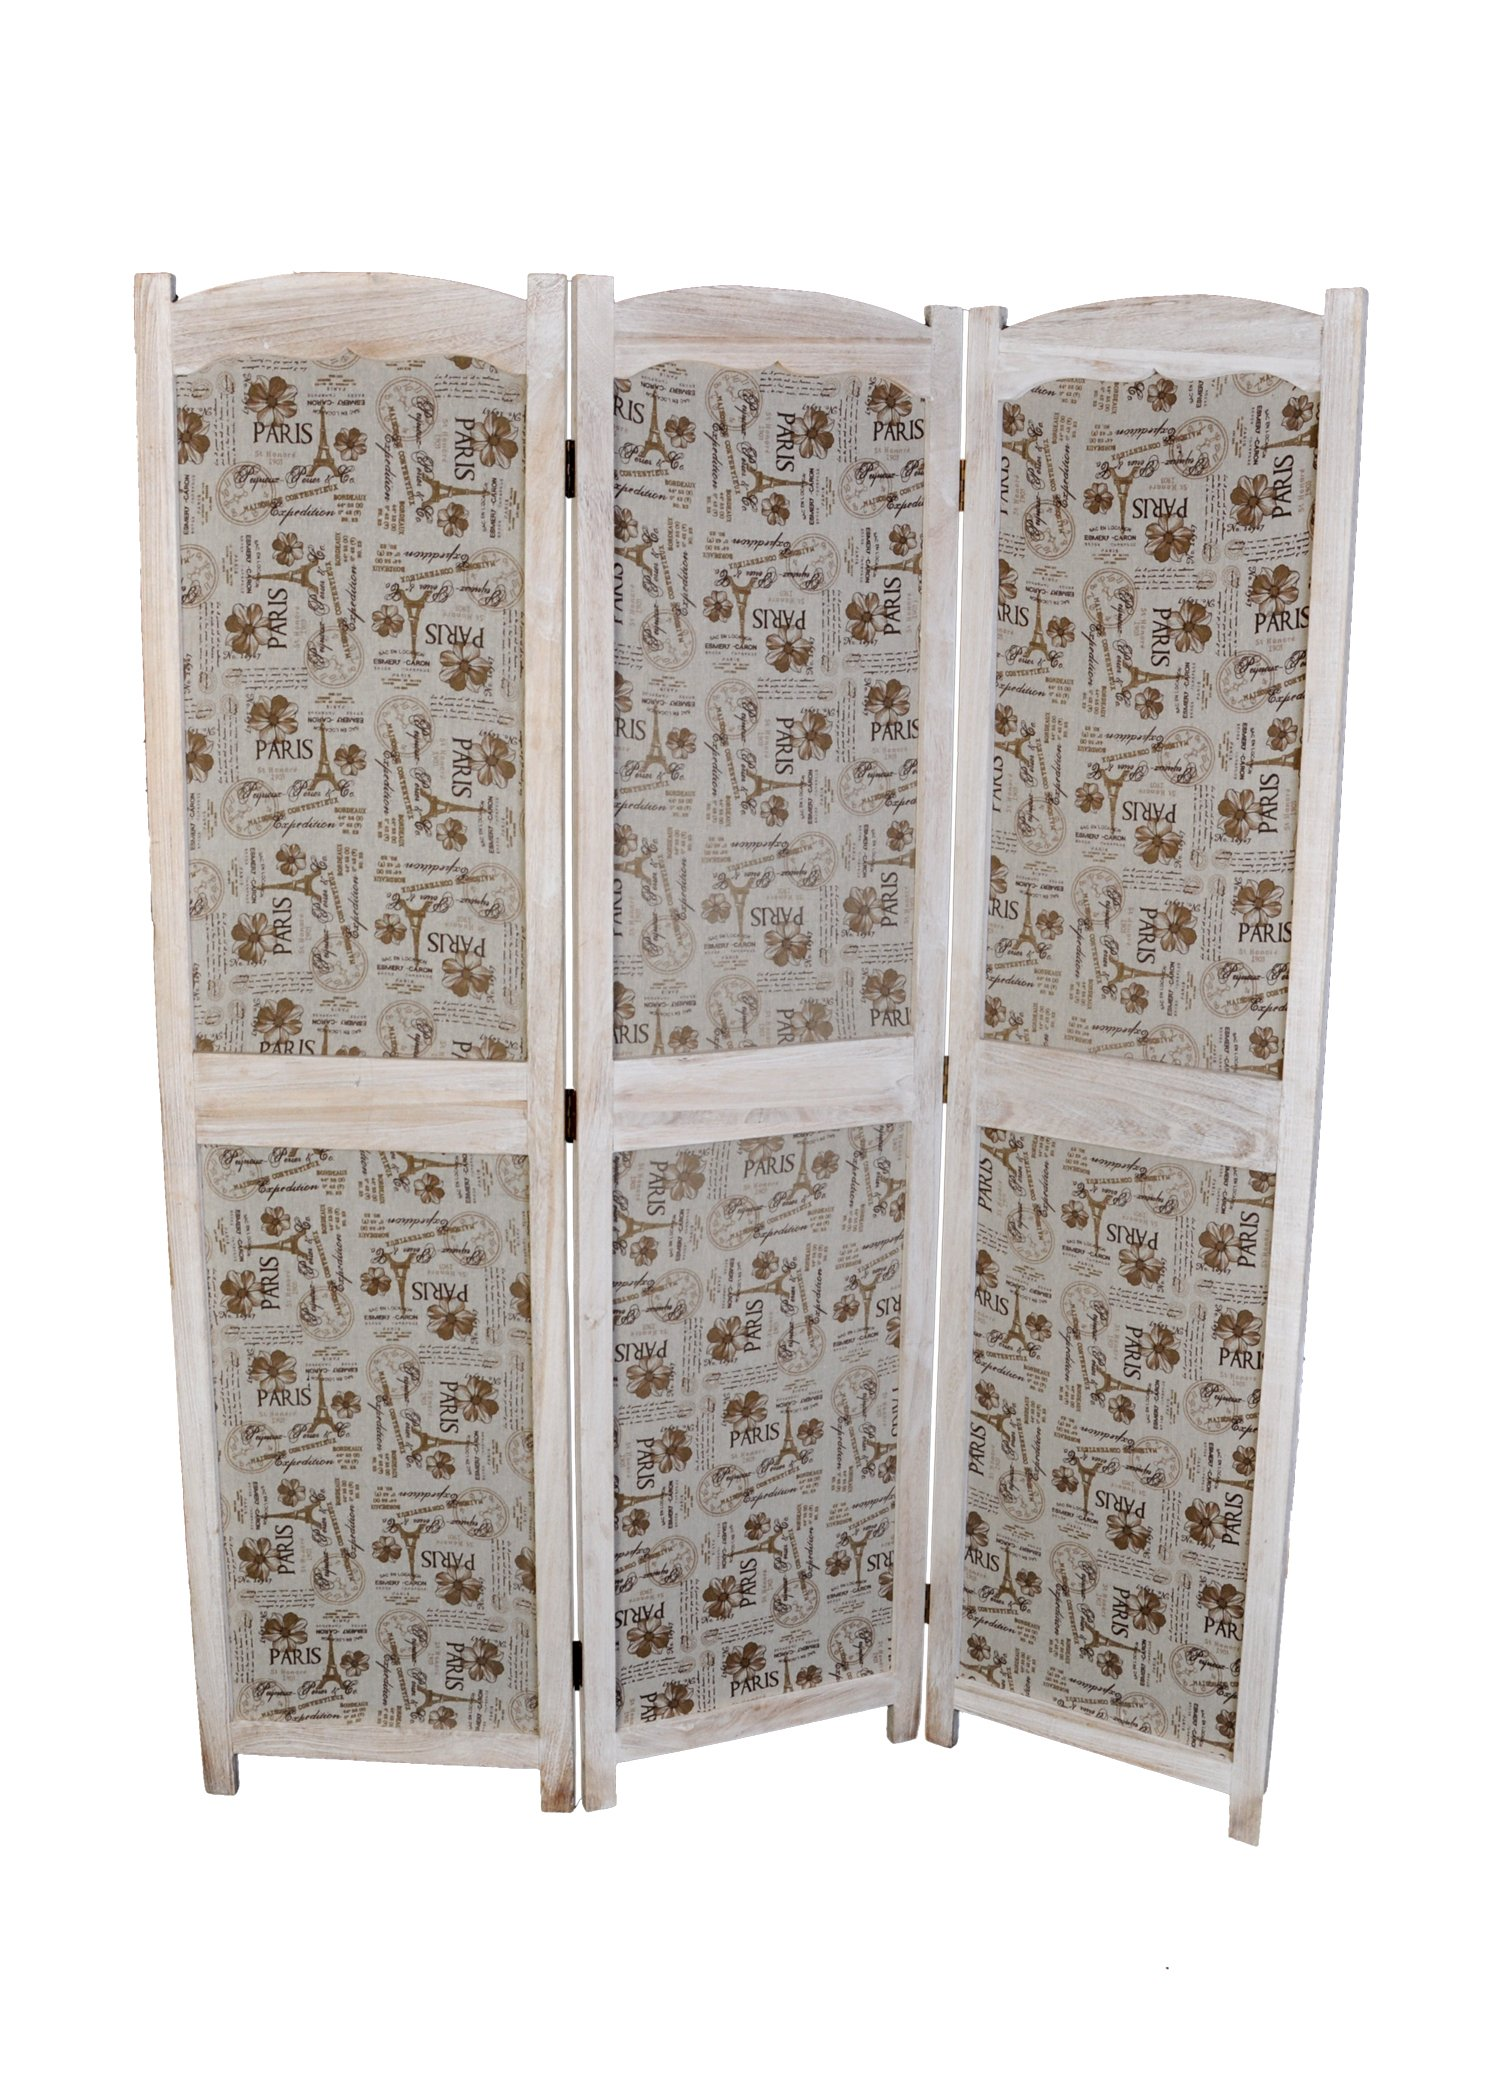 3 Panel Screen Room Divider, White Color Solid Wood with Paris Themed Canvas, by Legacy Decor